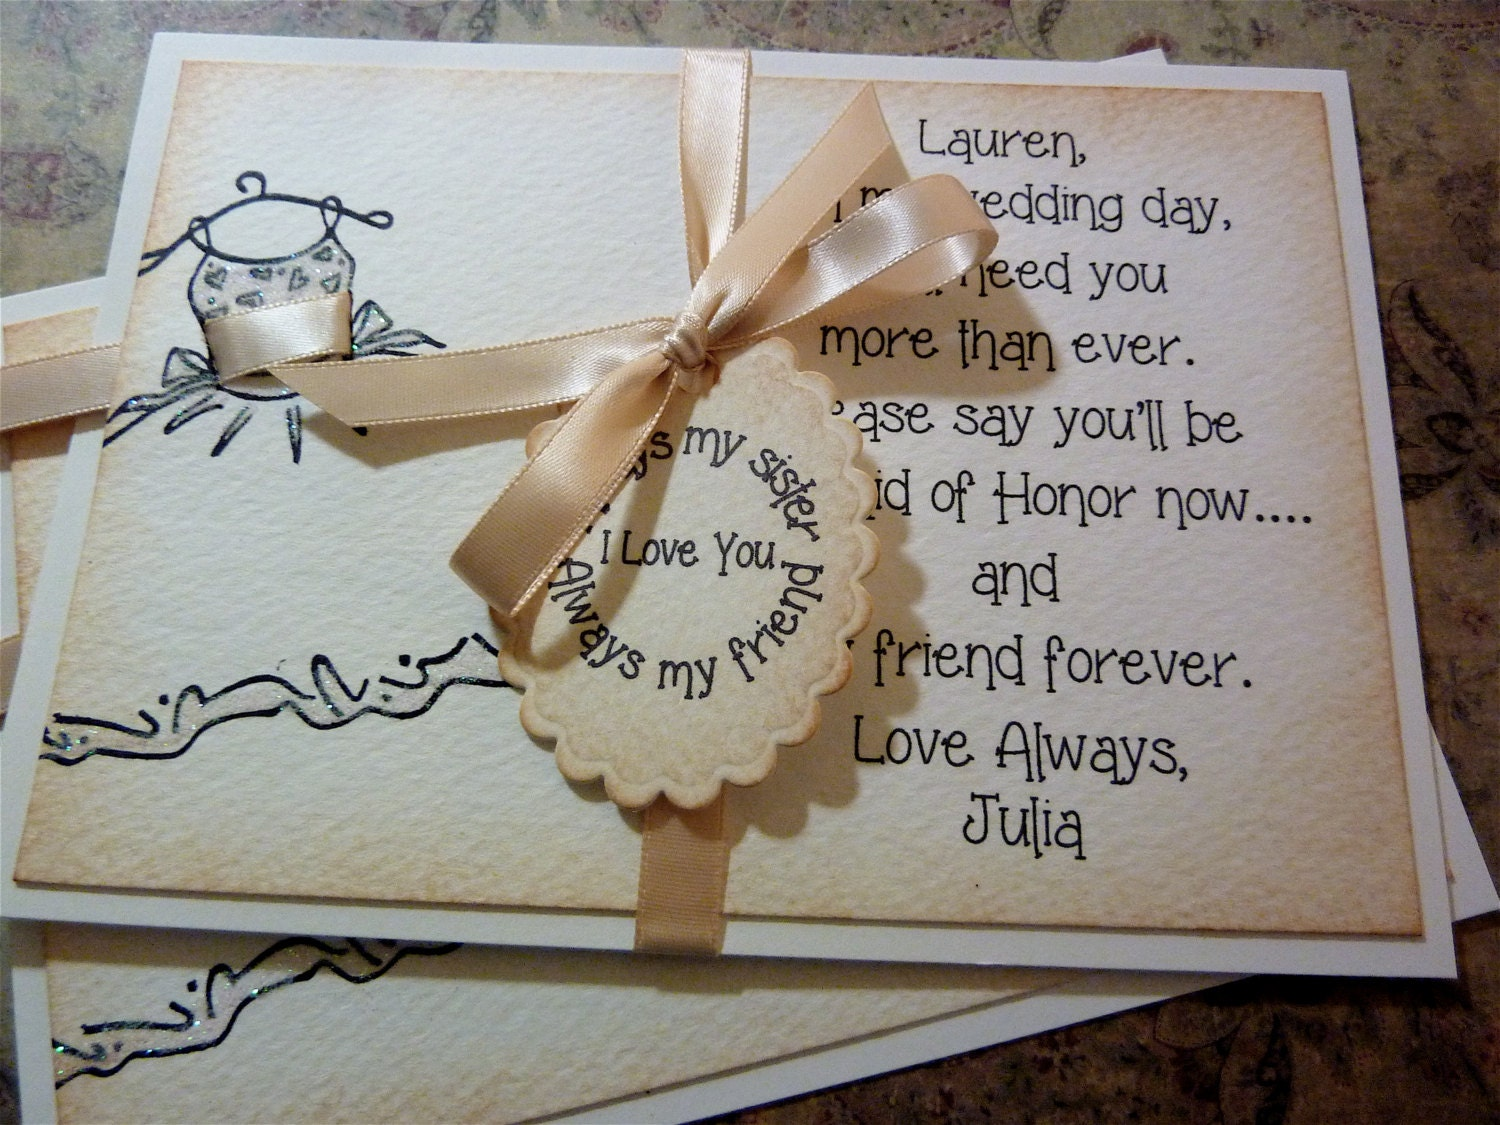 Honor Or Honour On Wedding Invitations: Be My Bridesmaid Be My Maid Of Honor Invitation Ask Sister